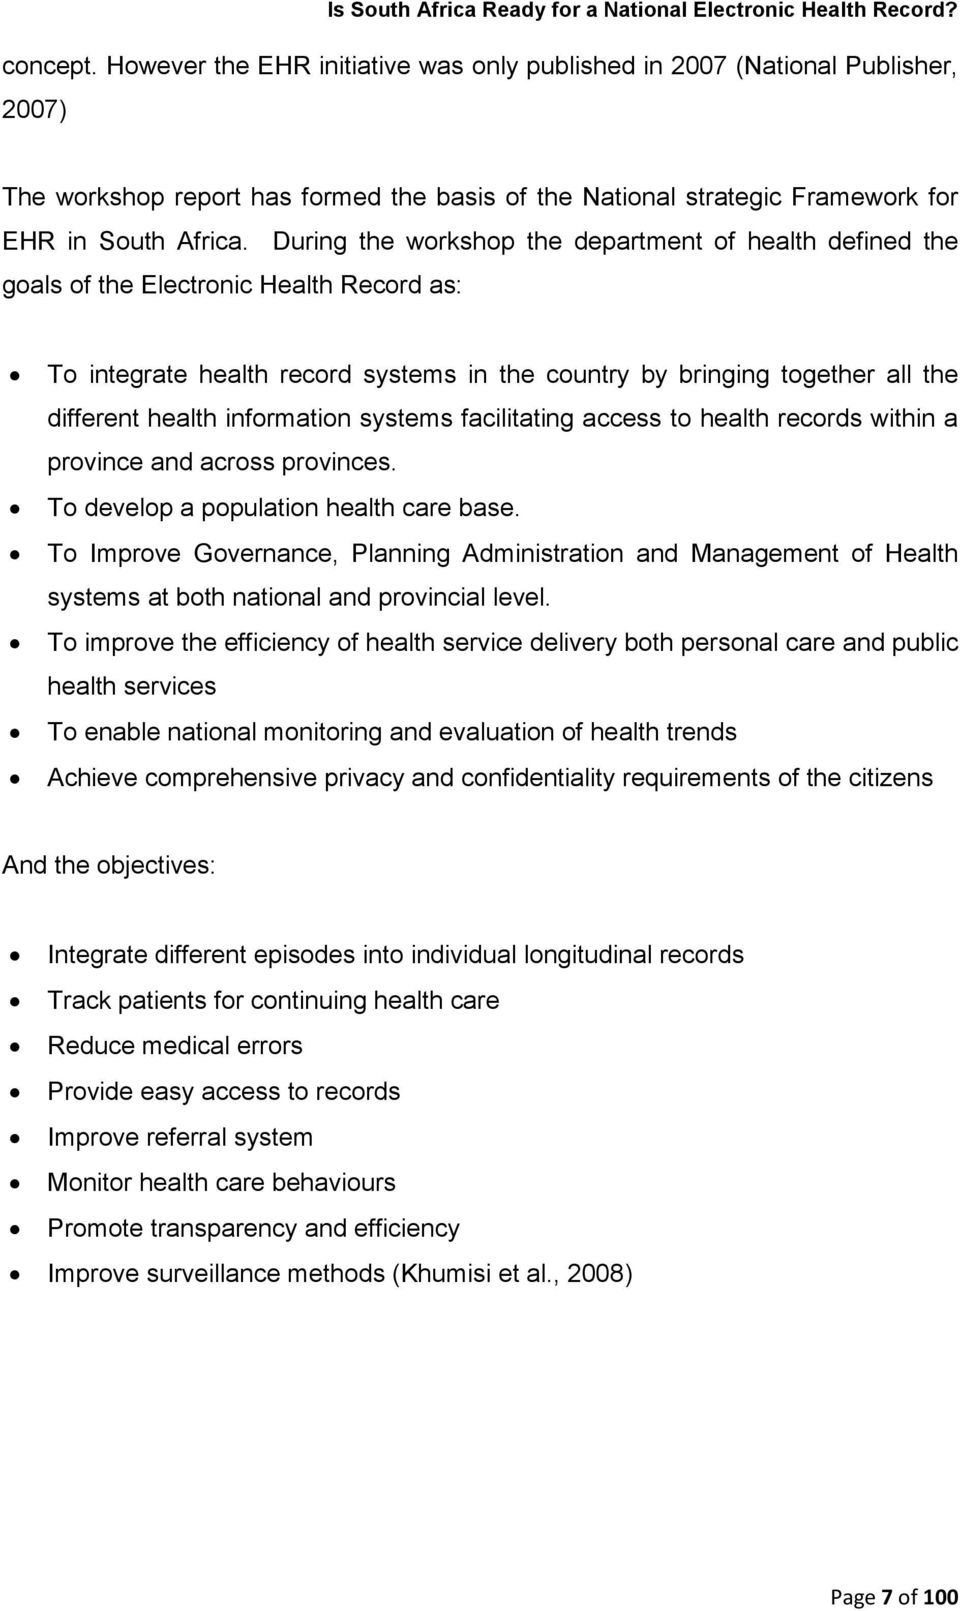 information systems facilitating access to health records within a province and across provinces. To develop a population health care base.